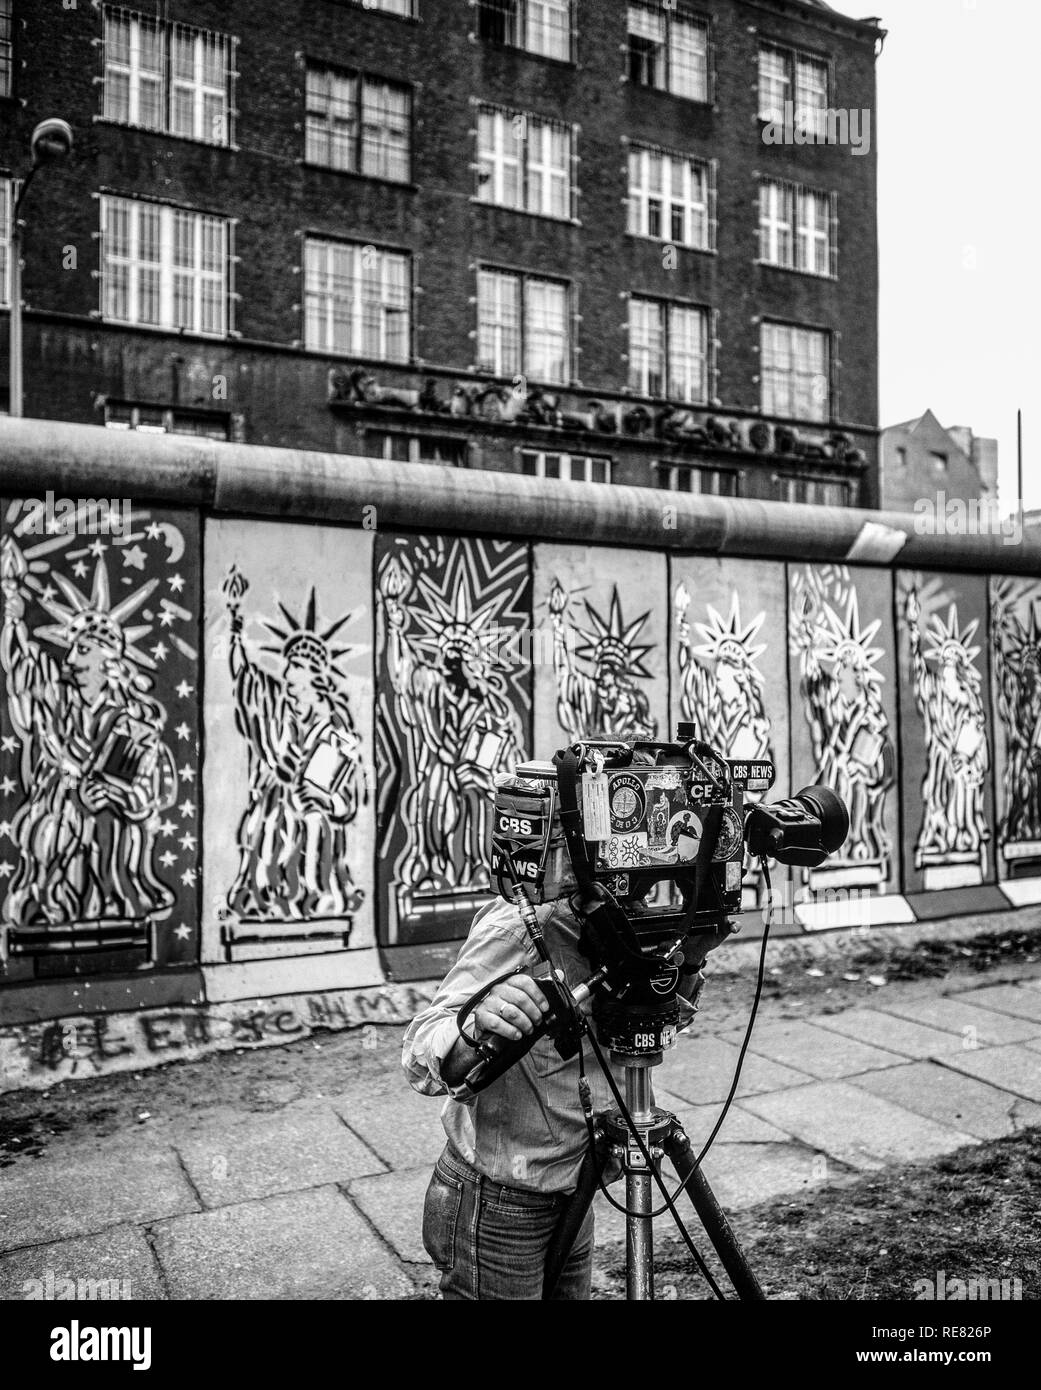 August 1986, CBS television cameraman, Berlin Wall decorated with Statue of Liberty frescos, West Berlin side, Germany, Europe, - Stock Image